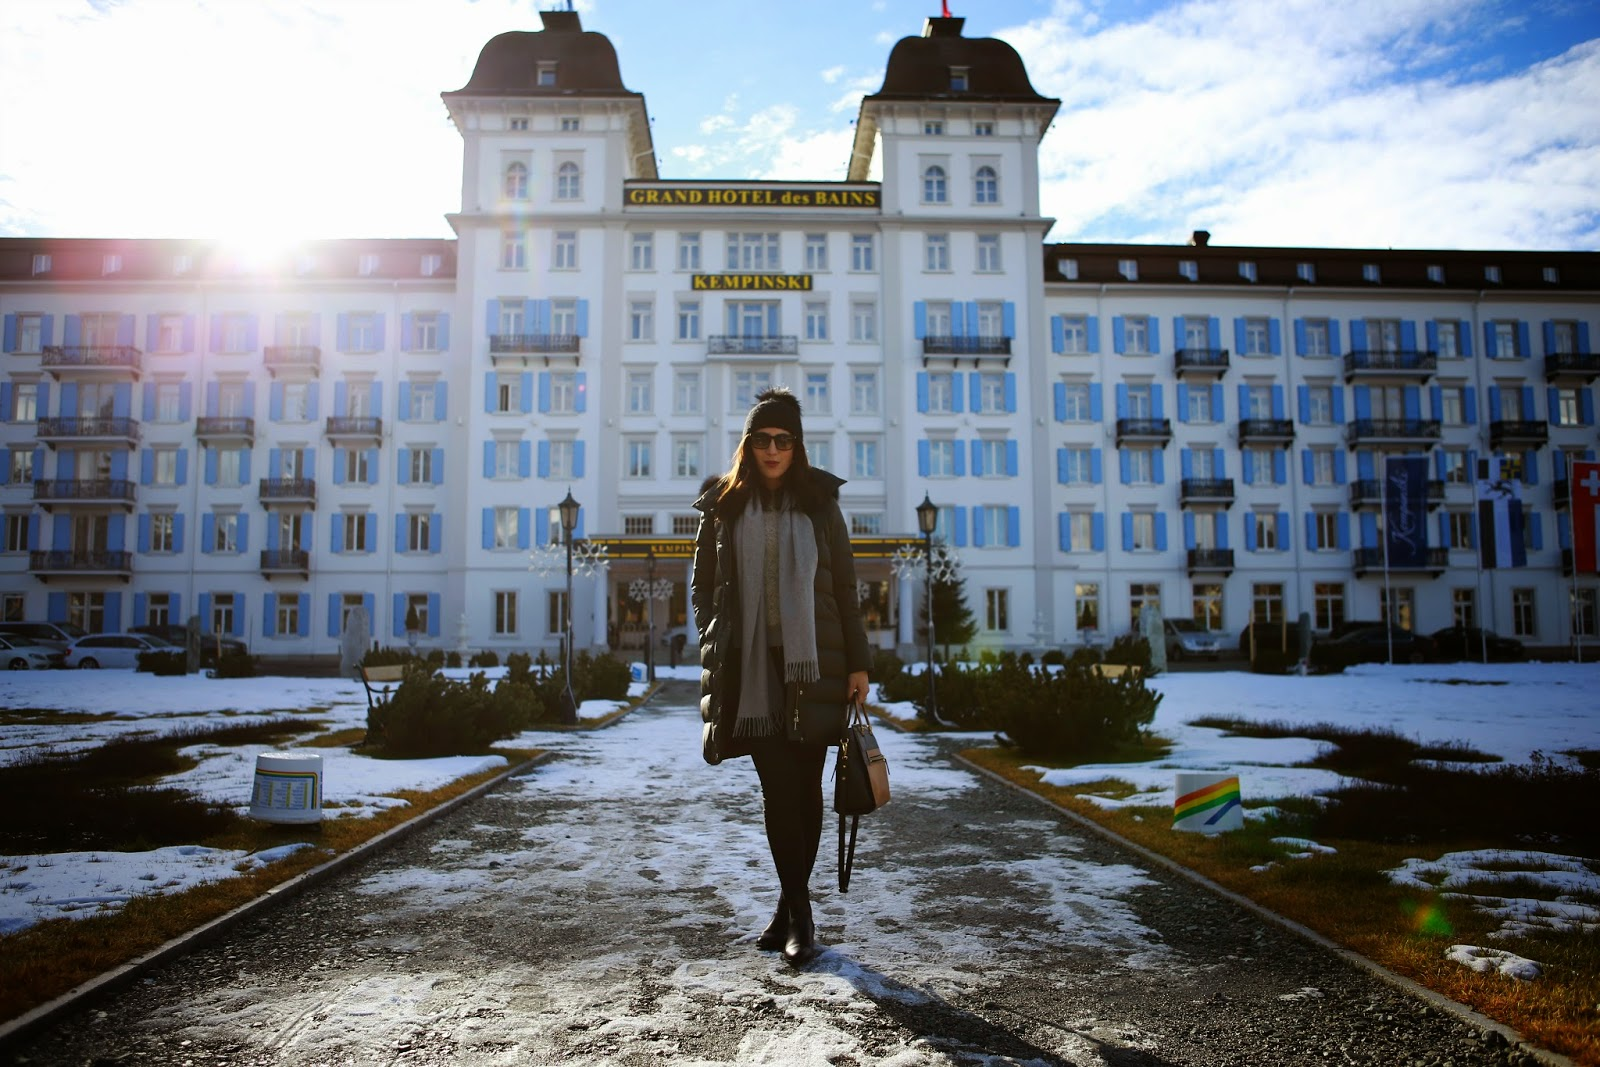 Kempinski grand hotel des bains an unforgettable winter for Grand hotel des bain